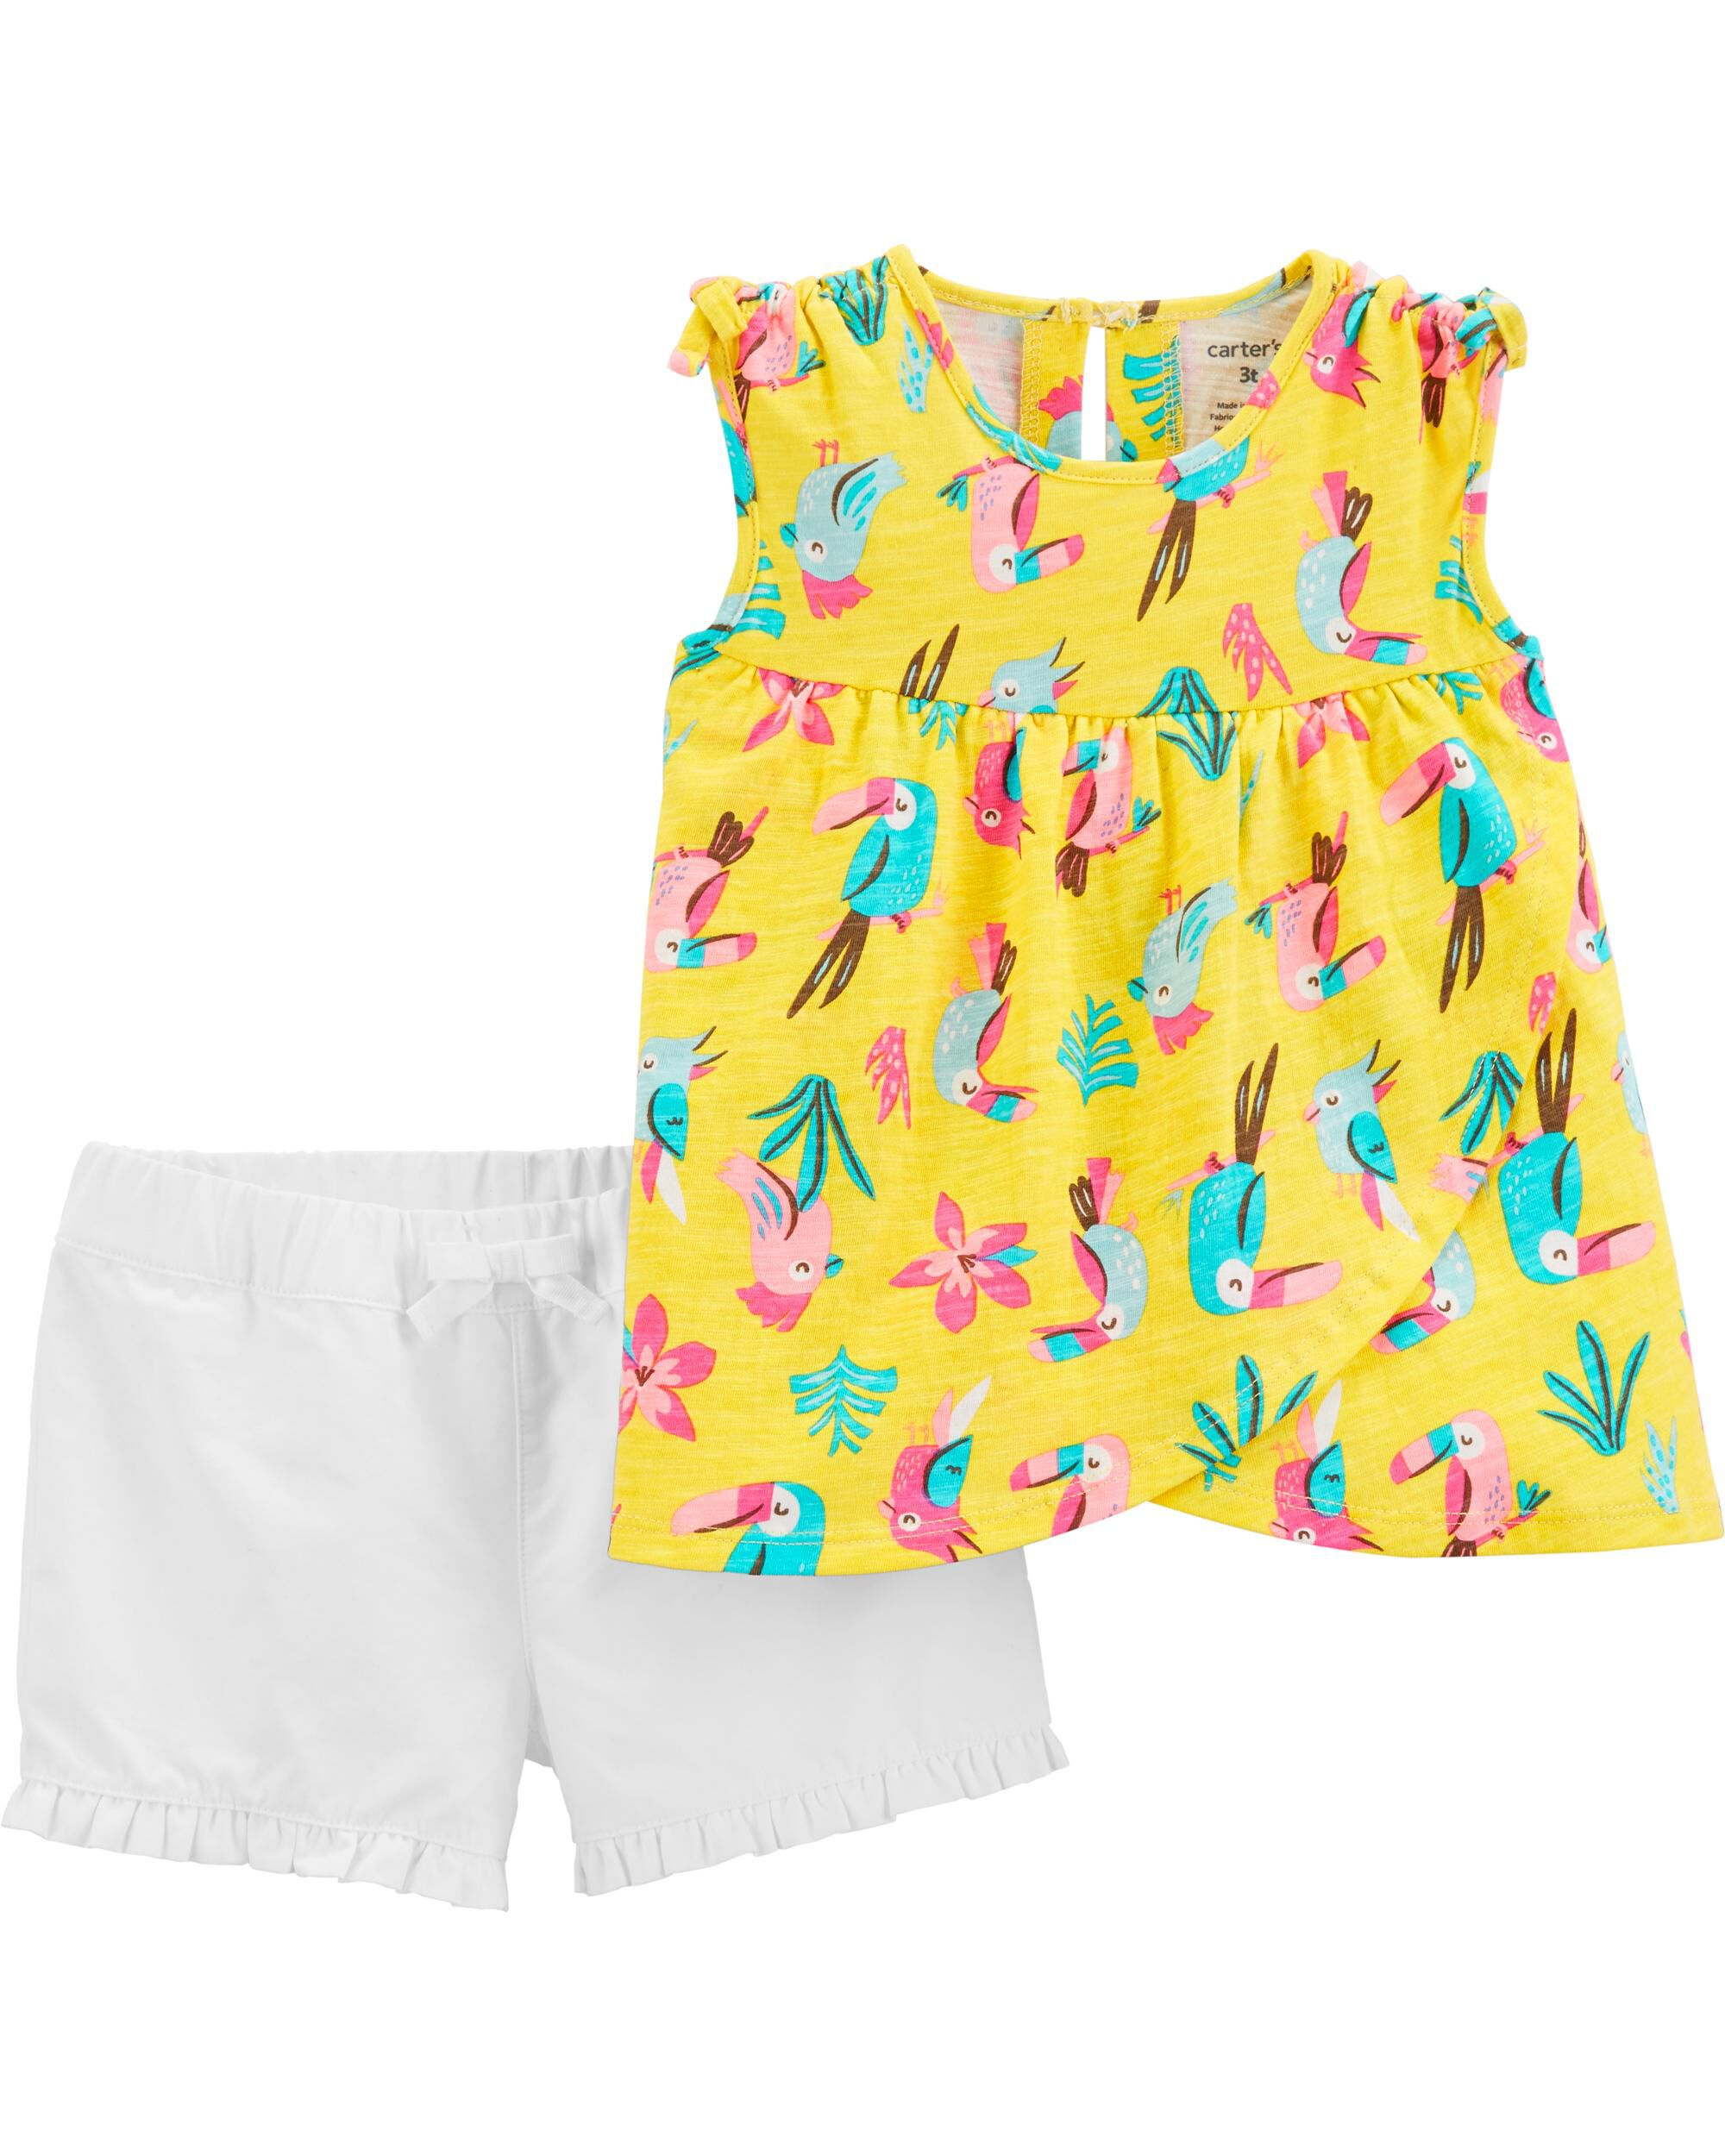 Dresses Carter's Baby Girl Skirt 6m Tropical Skirt With Built In Pants Free P+p Big Clearance Sale Girls' Clothing (0-24 Months)